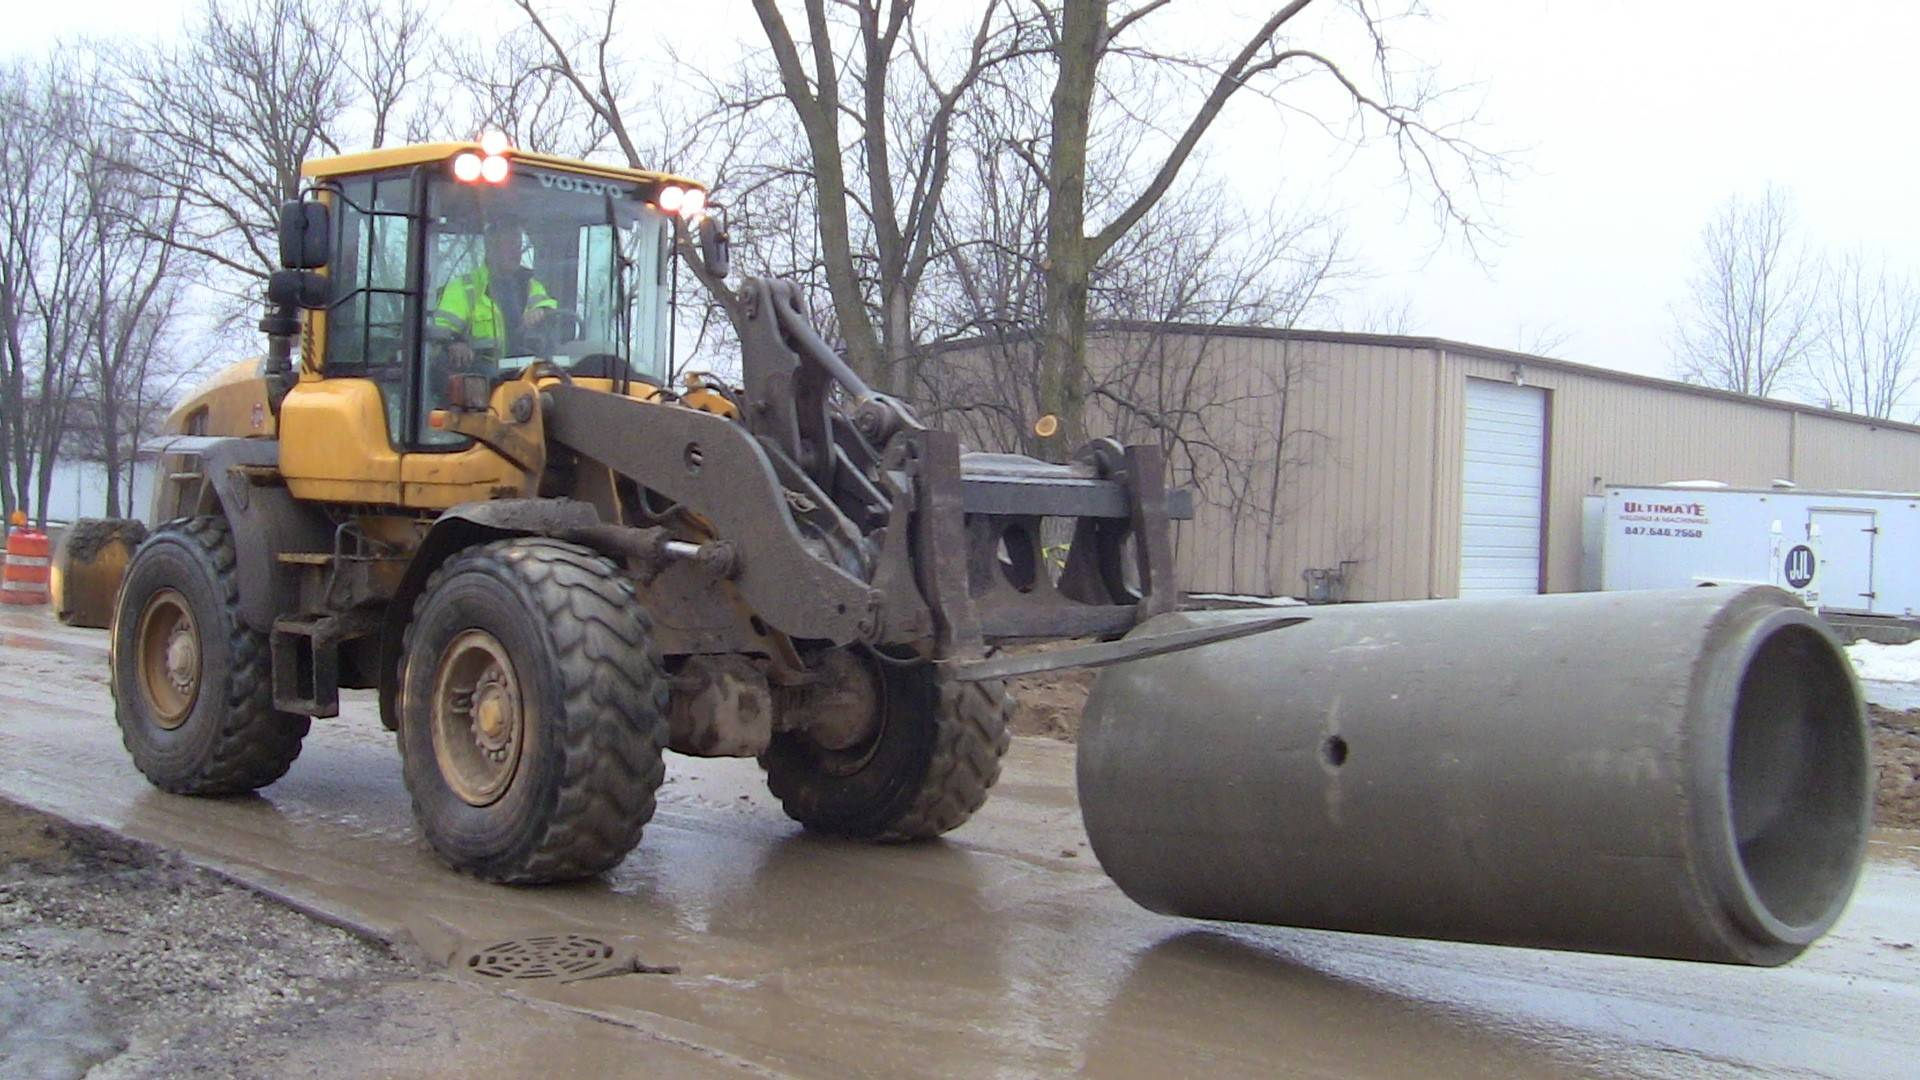 New storm sewers are being installed as part of $4.7 million in work at Hart Road and Sunset Drive in Round Lake. Officials say it's the village's single-largest infrastructure improvement project.